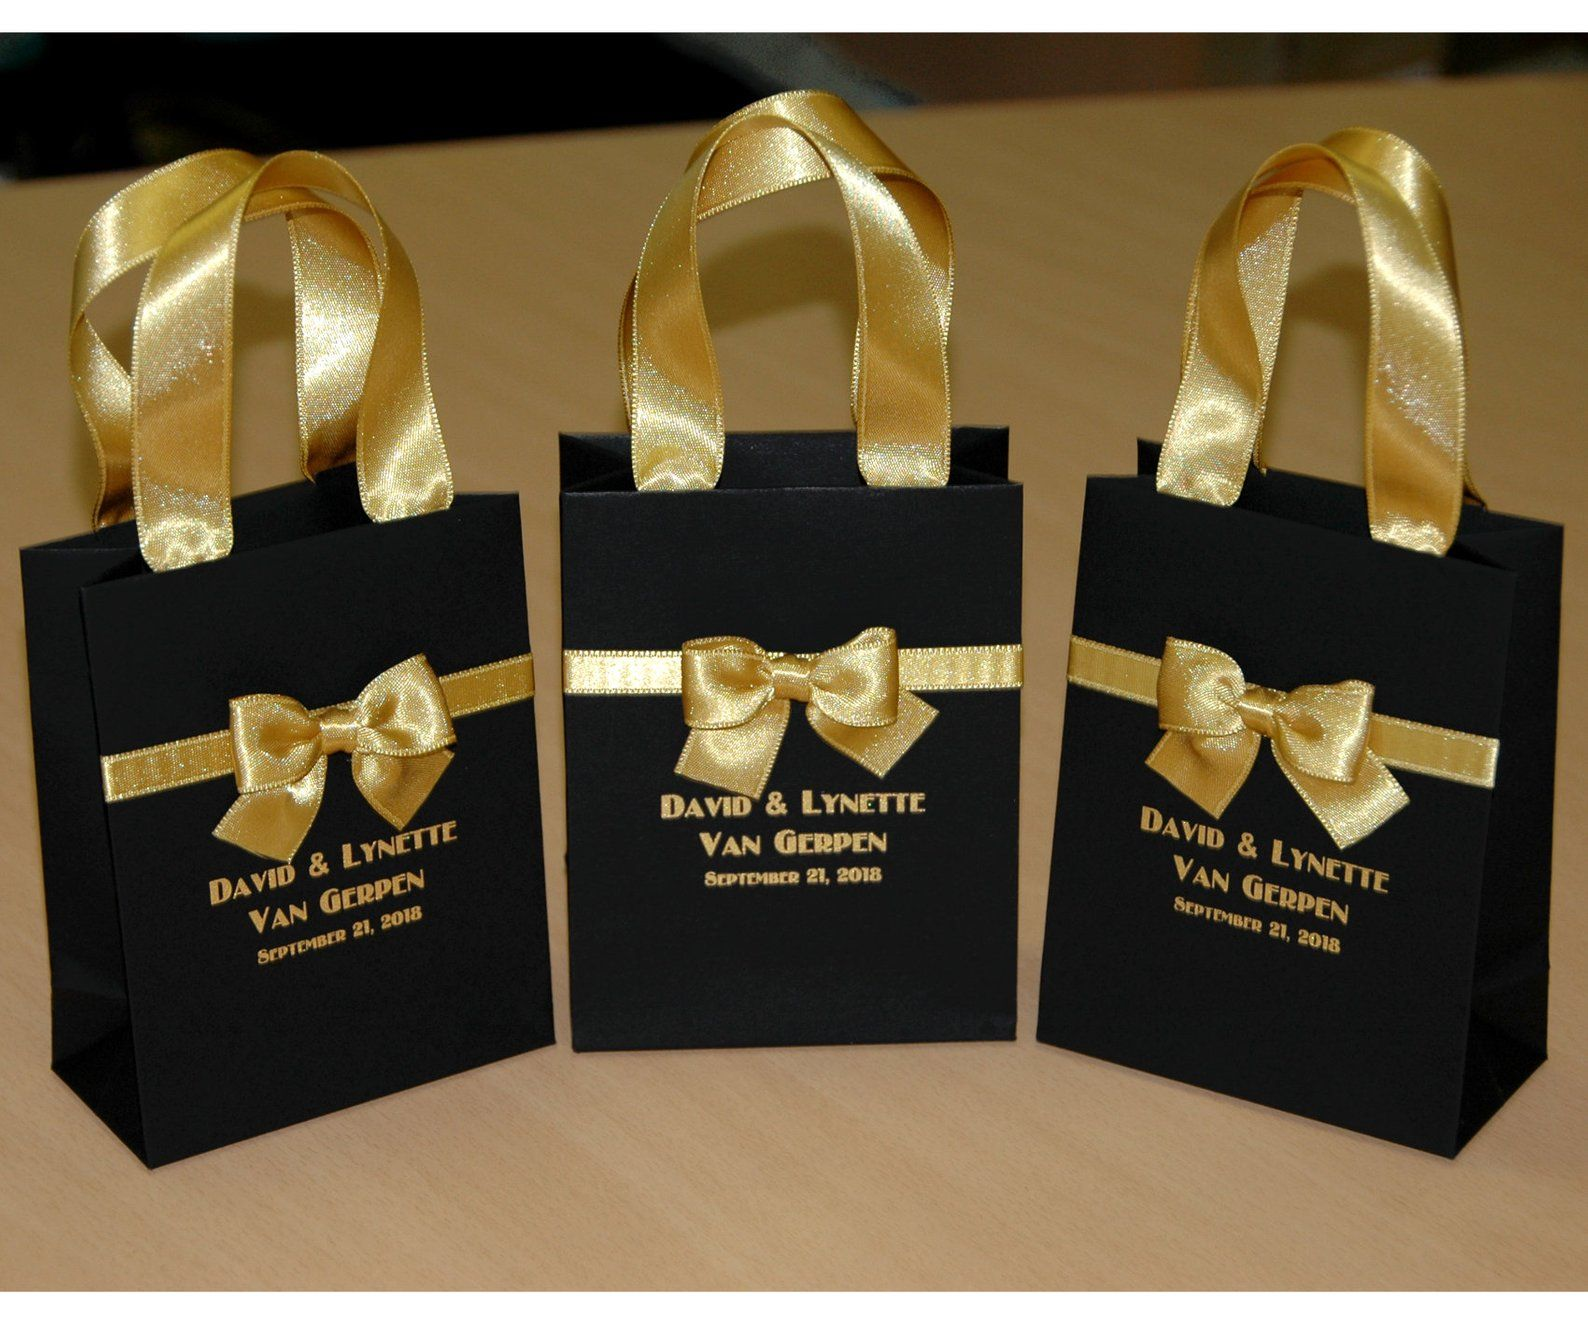 25 chic wedding gift bags with satin ribbon handles bow